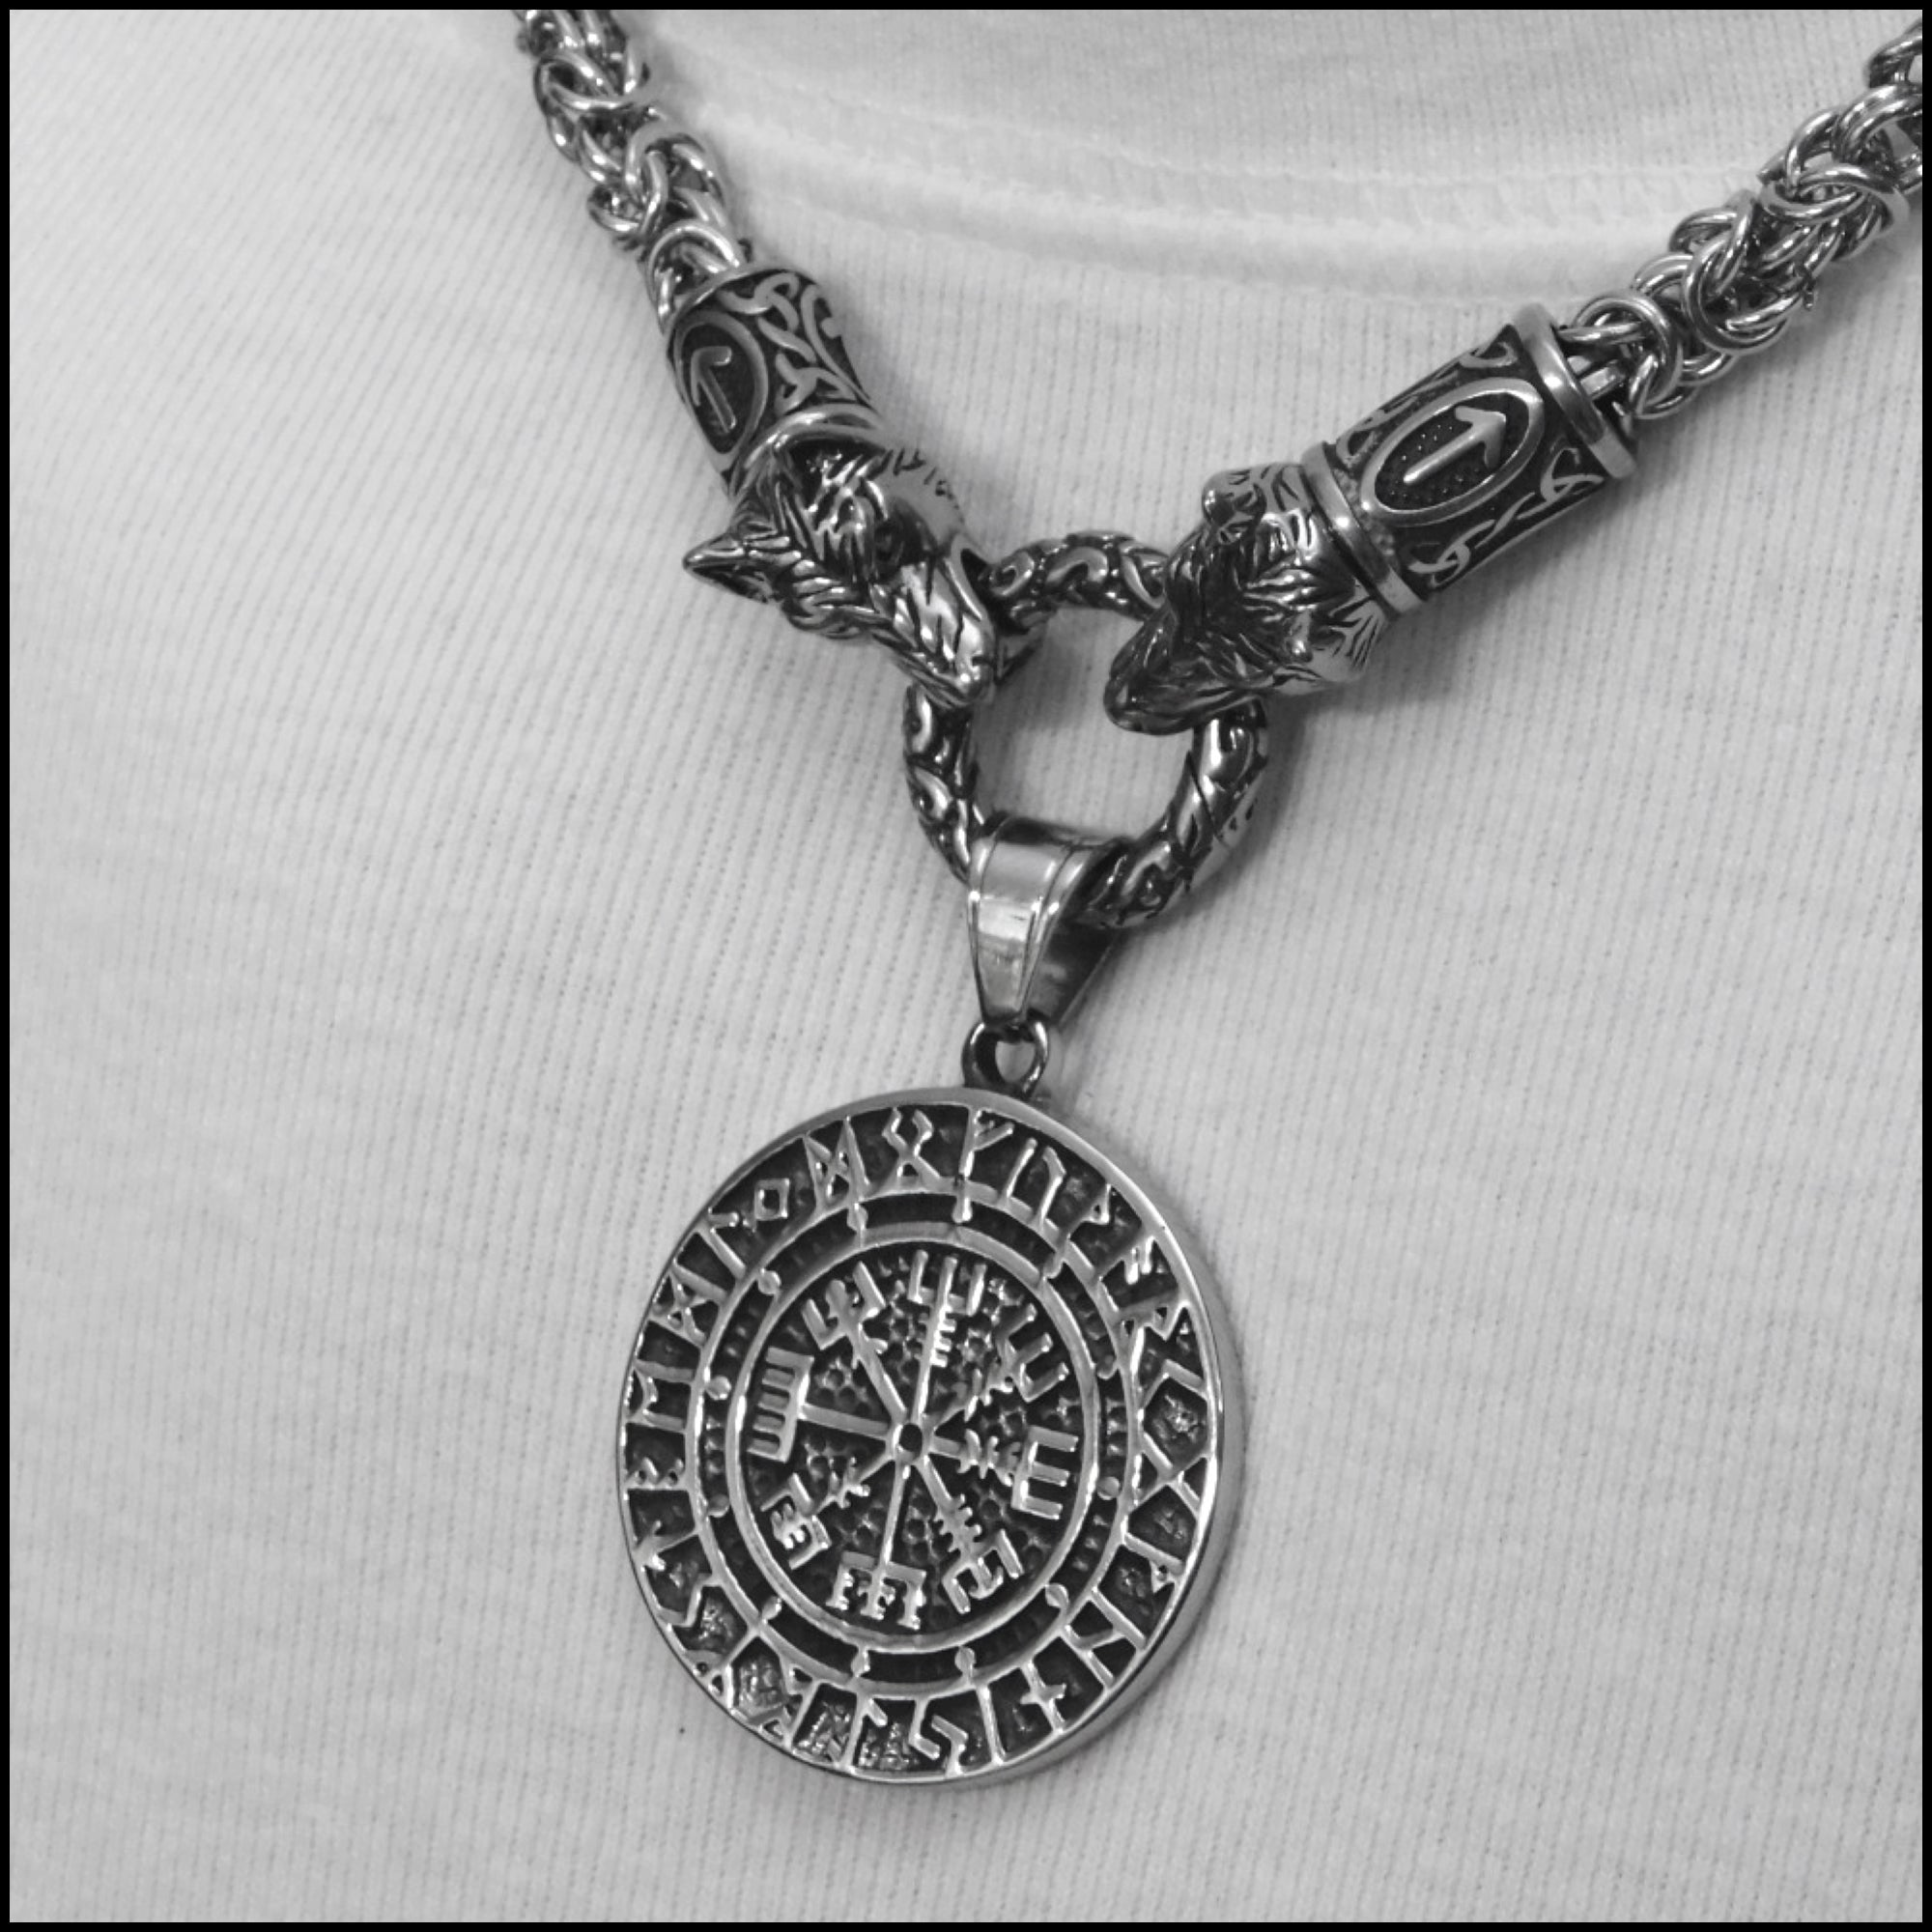 Wolf Warrior Necklace Featuring Chainmaille Necklace with Viking Magical Mystical Compass Pendant